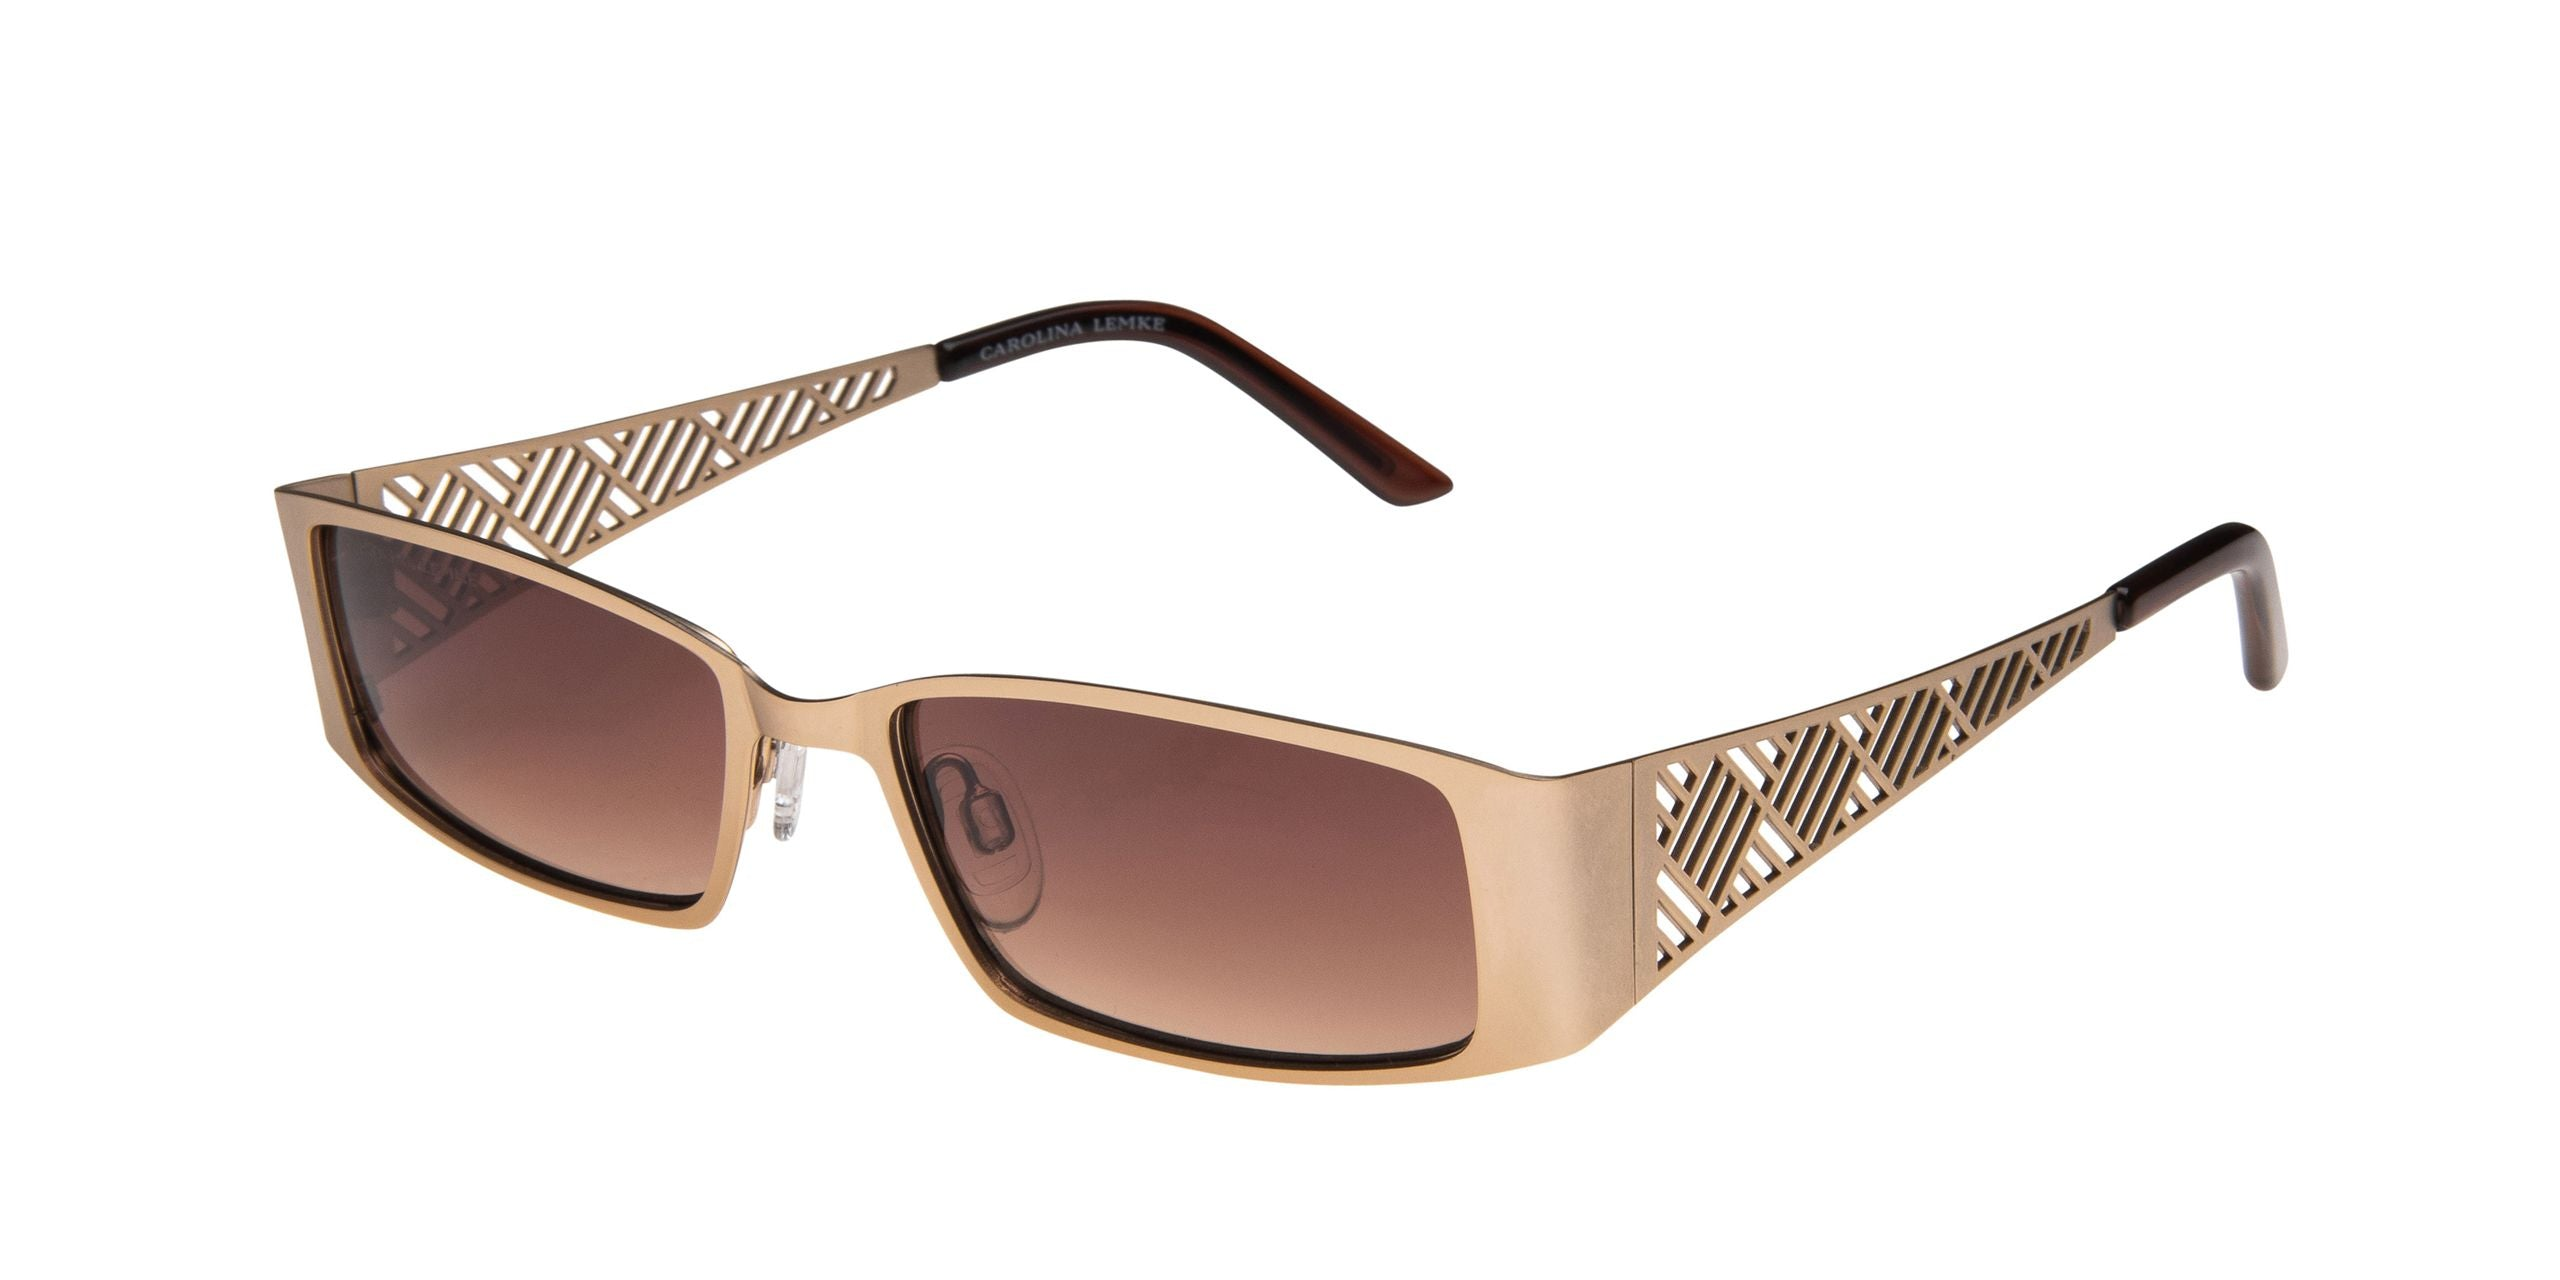 FRAME Matt Light Gold LENS Gradient Brown